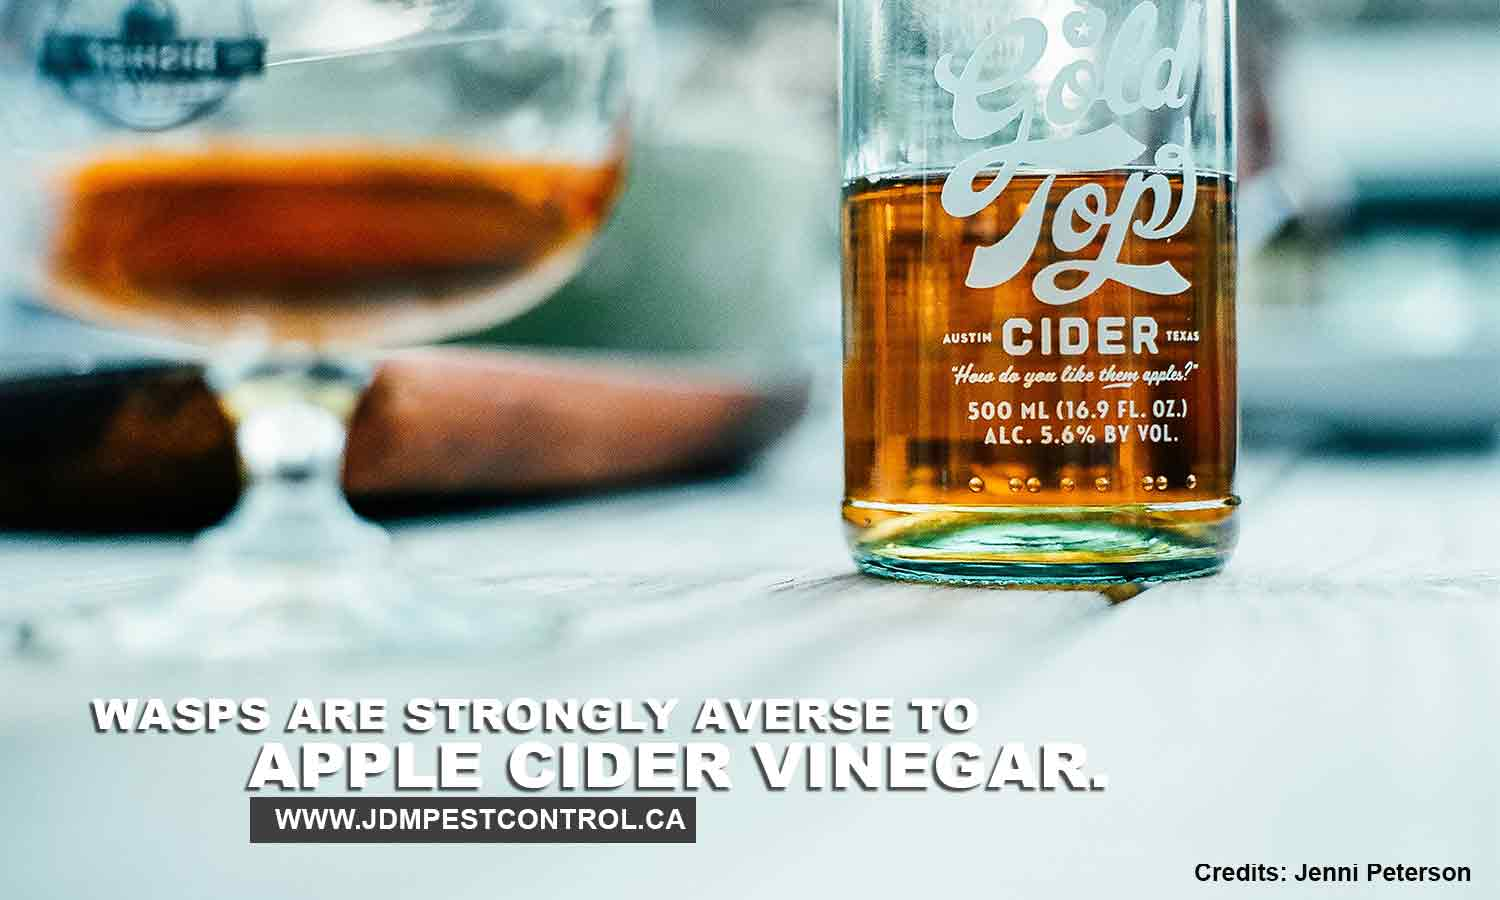 Wasps are strongly averse to apple cider vinegar.